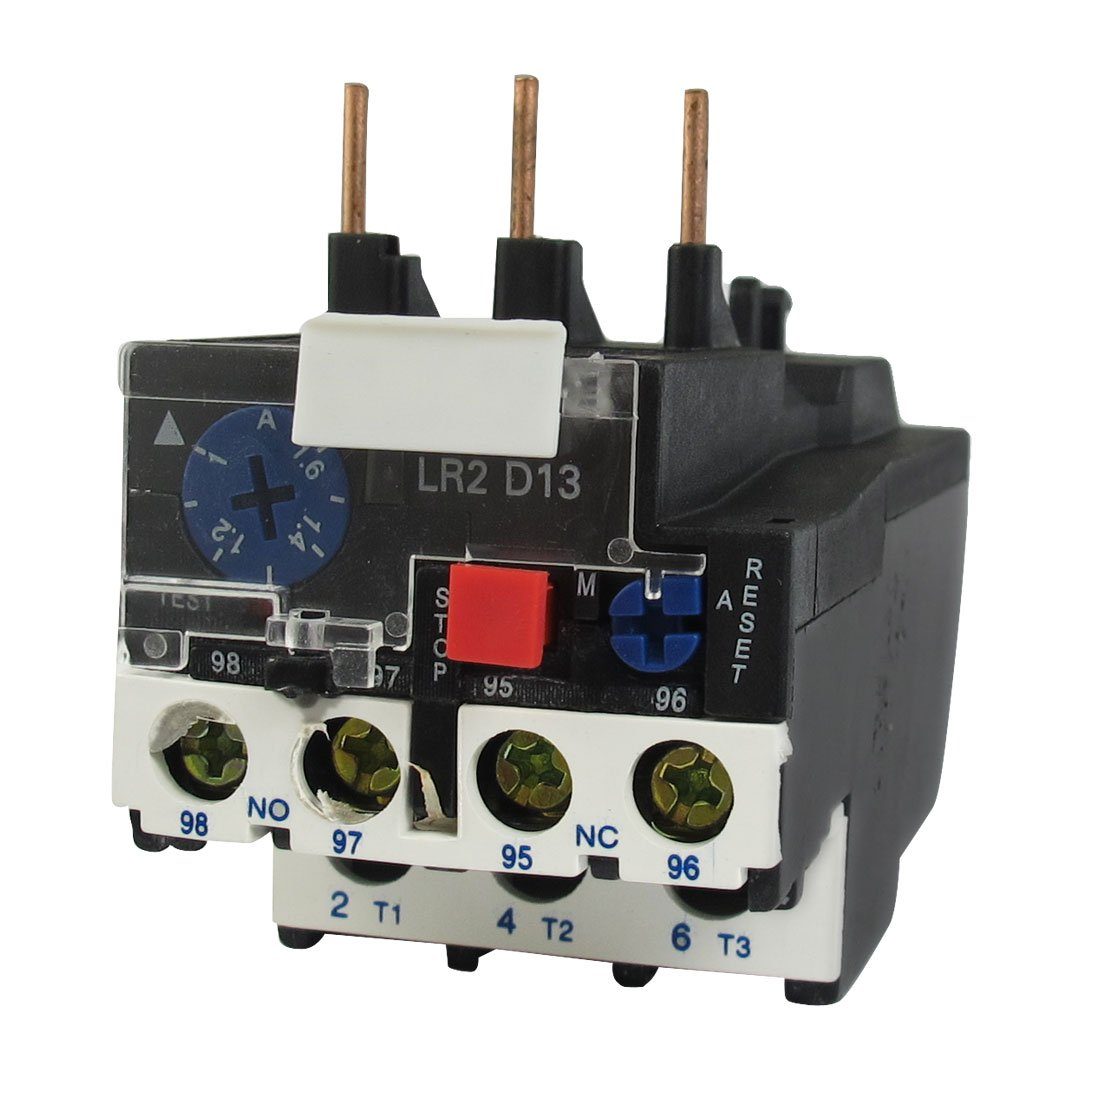 LR2-13 1.6A 1-1.6A 3-Phase 1NO 1NC Electric Thermal Overload Relay chint nr2 25 z 1 1 6a thermal overload relay